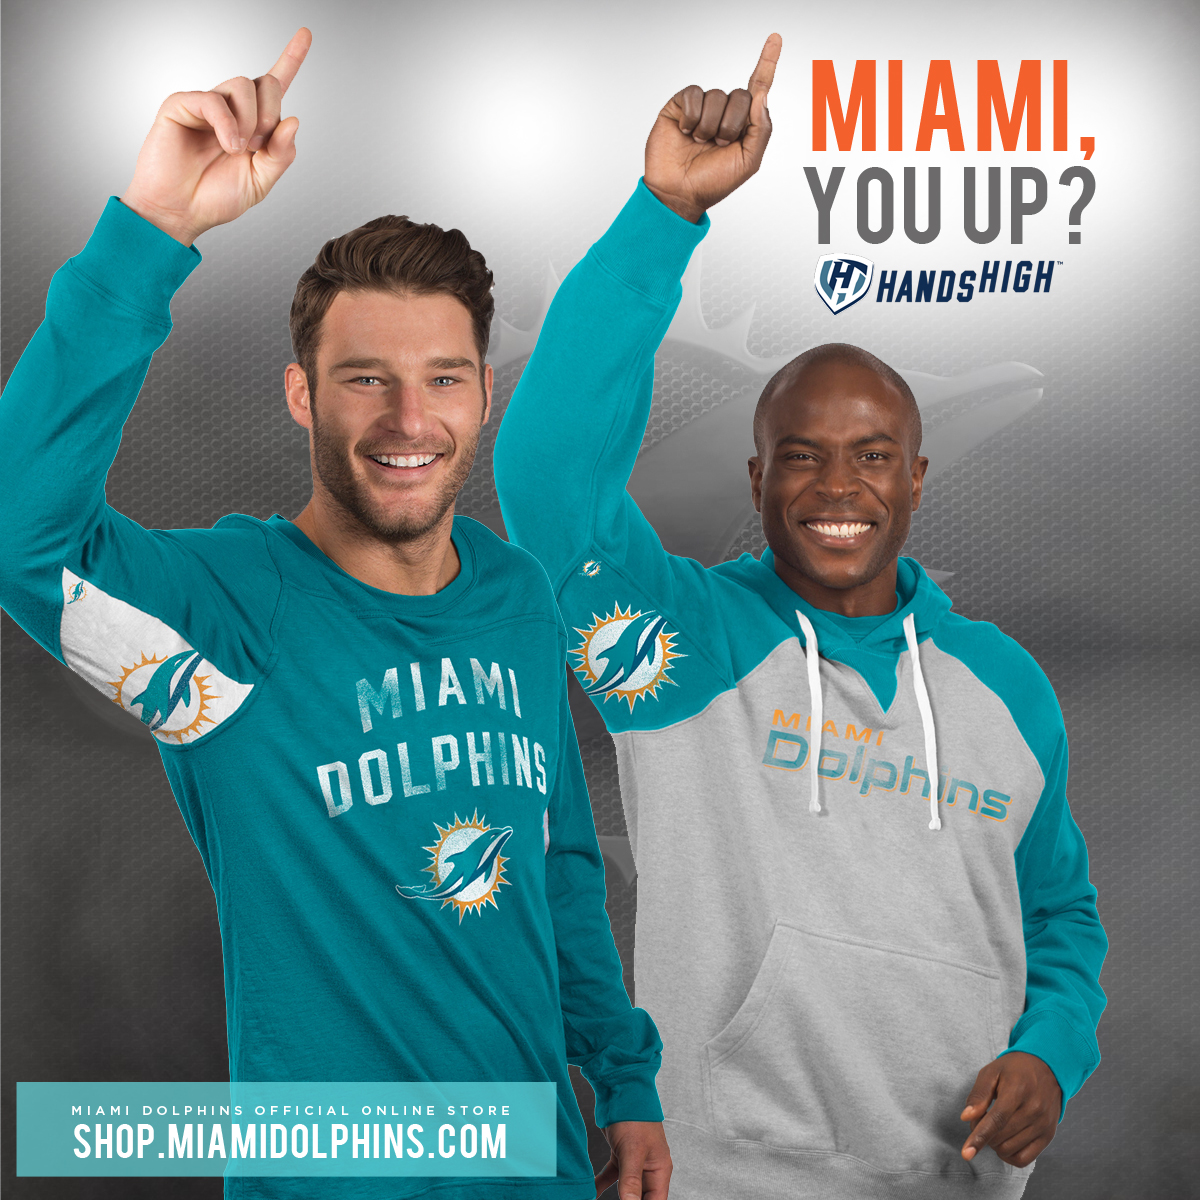 New Hands High Dolphins Gear!